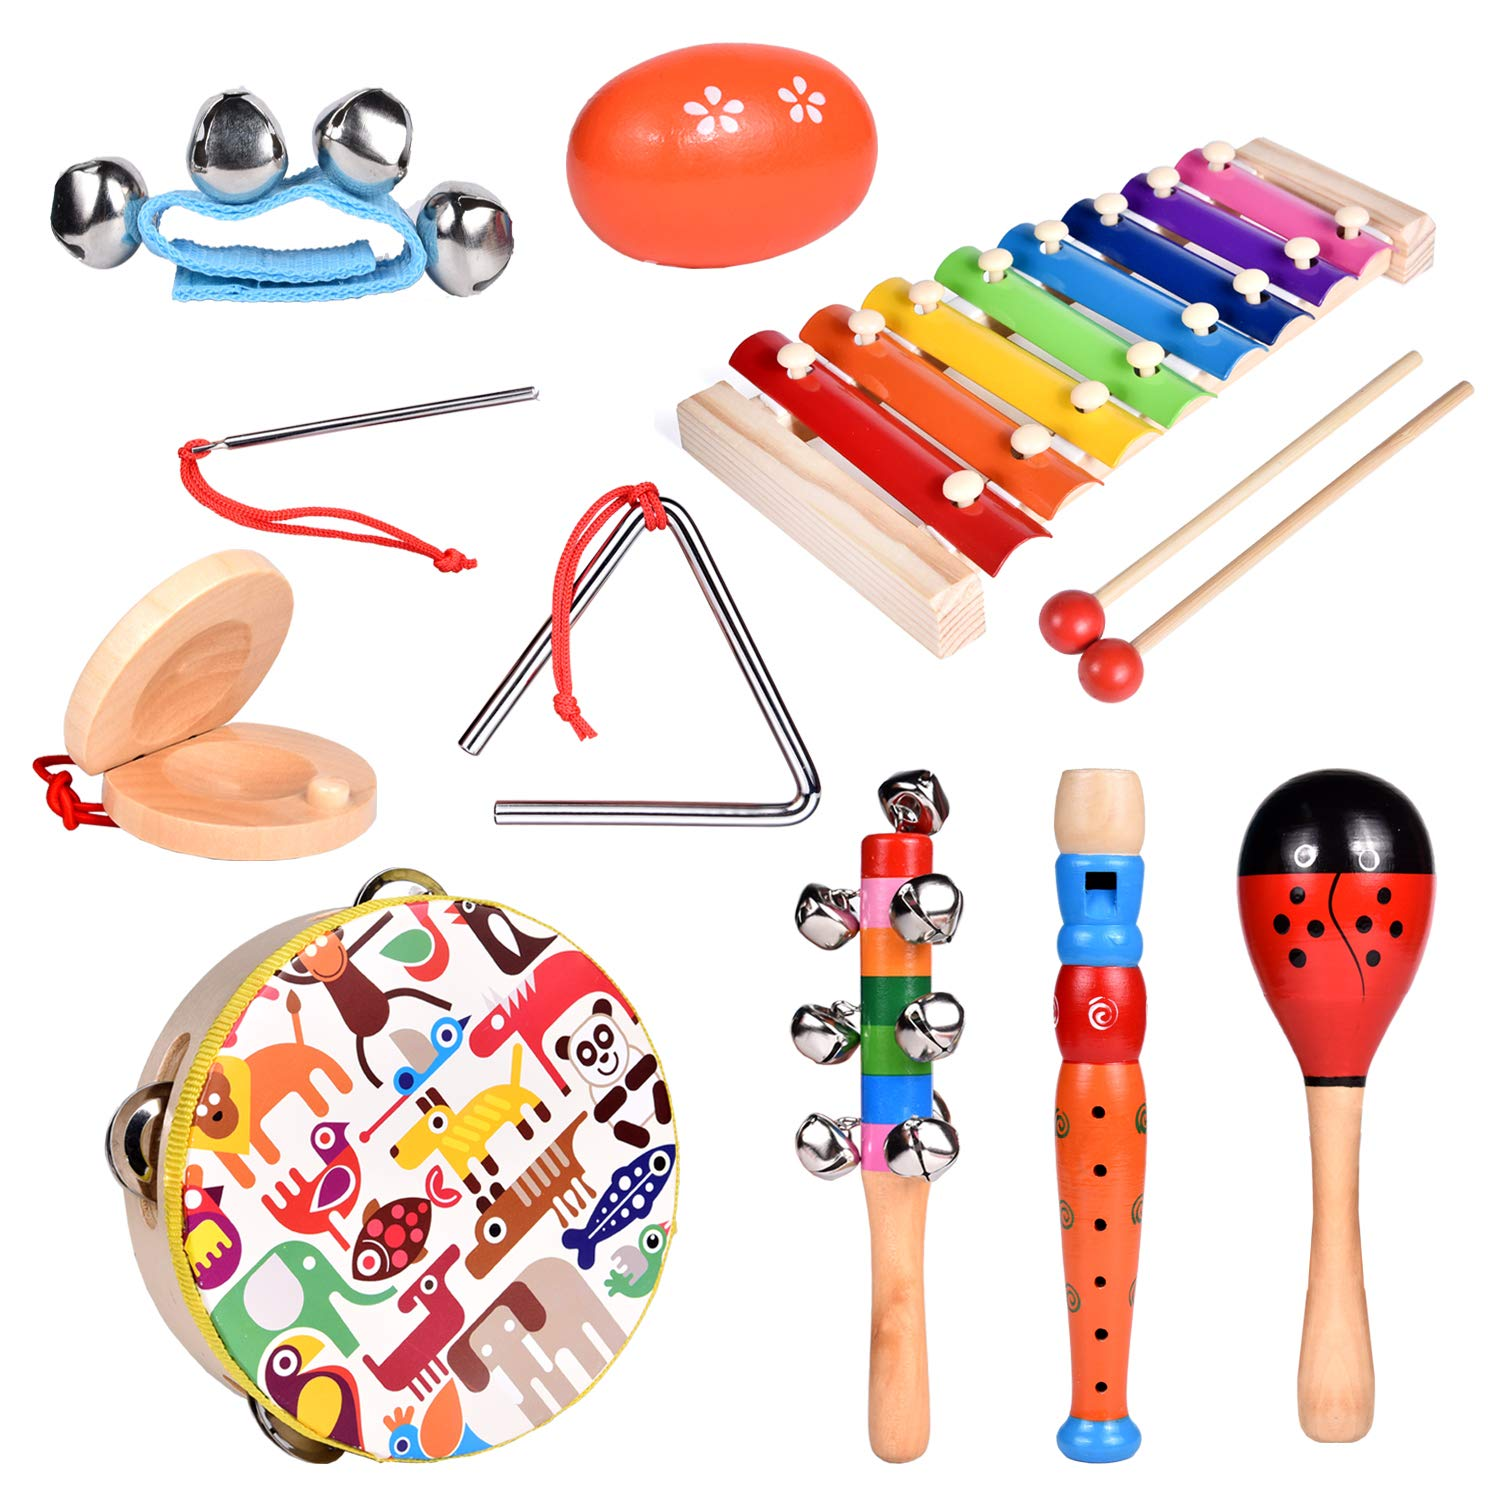 Toddler Musical Instrument Toy Set-12Pcs Wooden Percussion Toys Including Tambourine